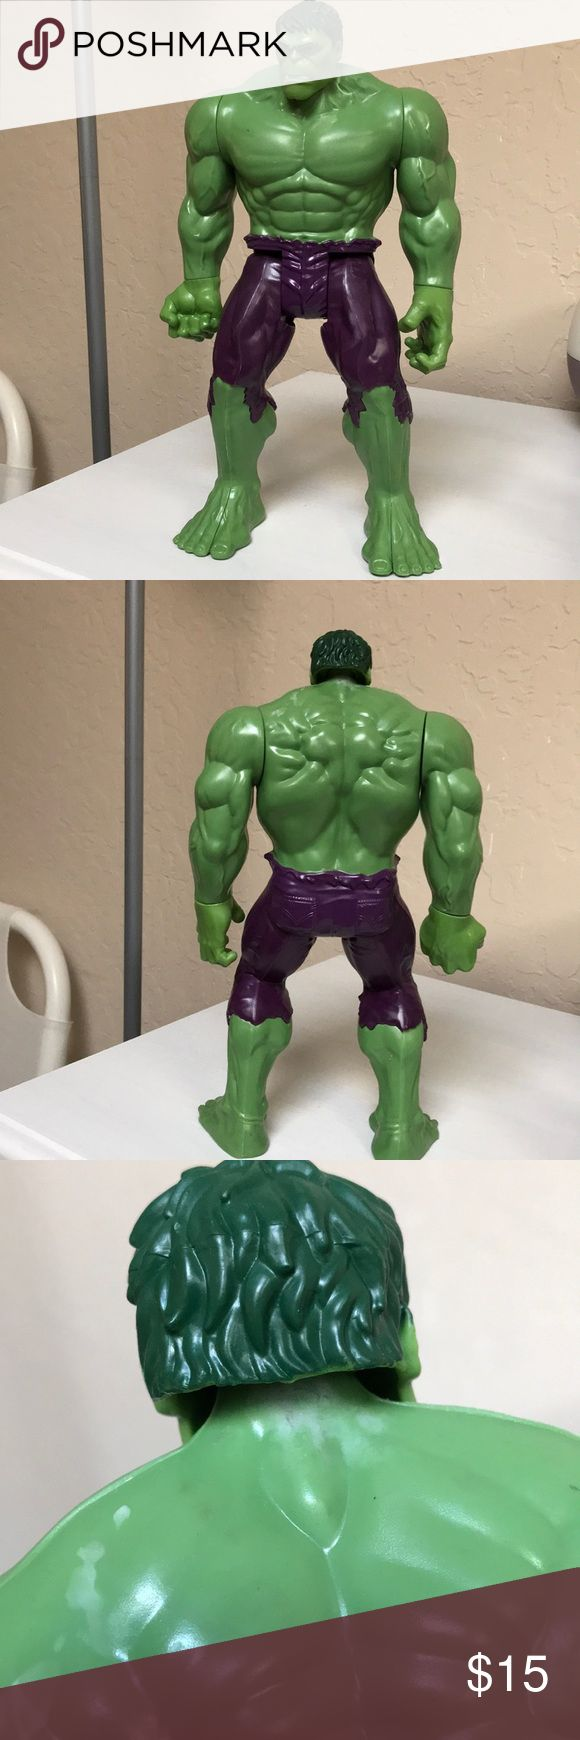 toy :: Hulk Figurine Hulk figurine.  Imperfections are shown in the close ups above.  Good condition. Other